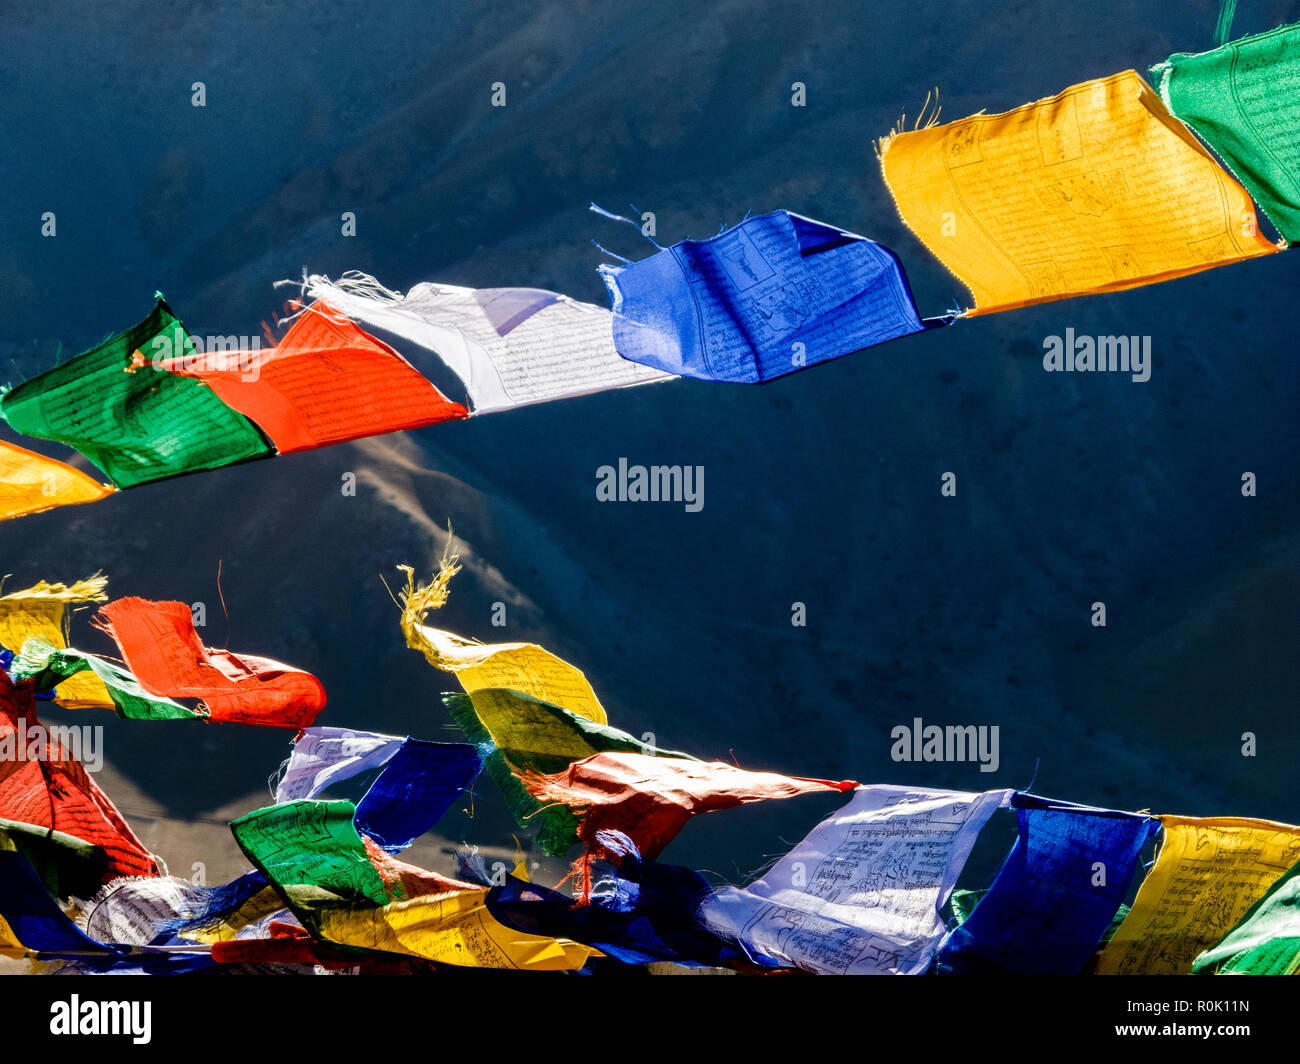 Prayerflags, wonderful buddhist tradition to spread good wishes for everyone - Stock Image